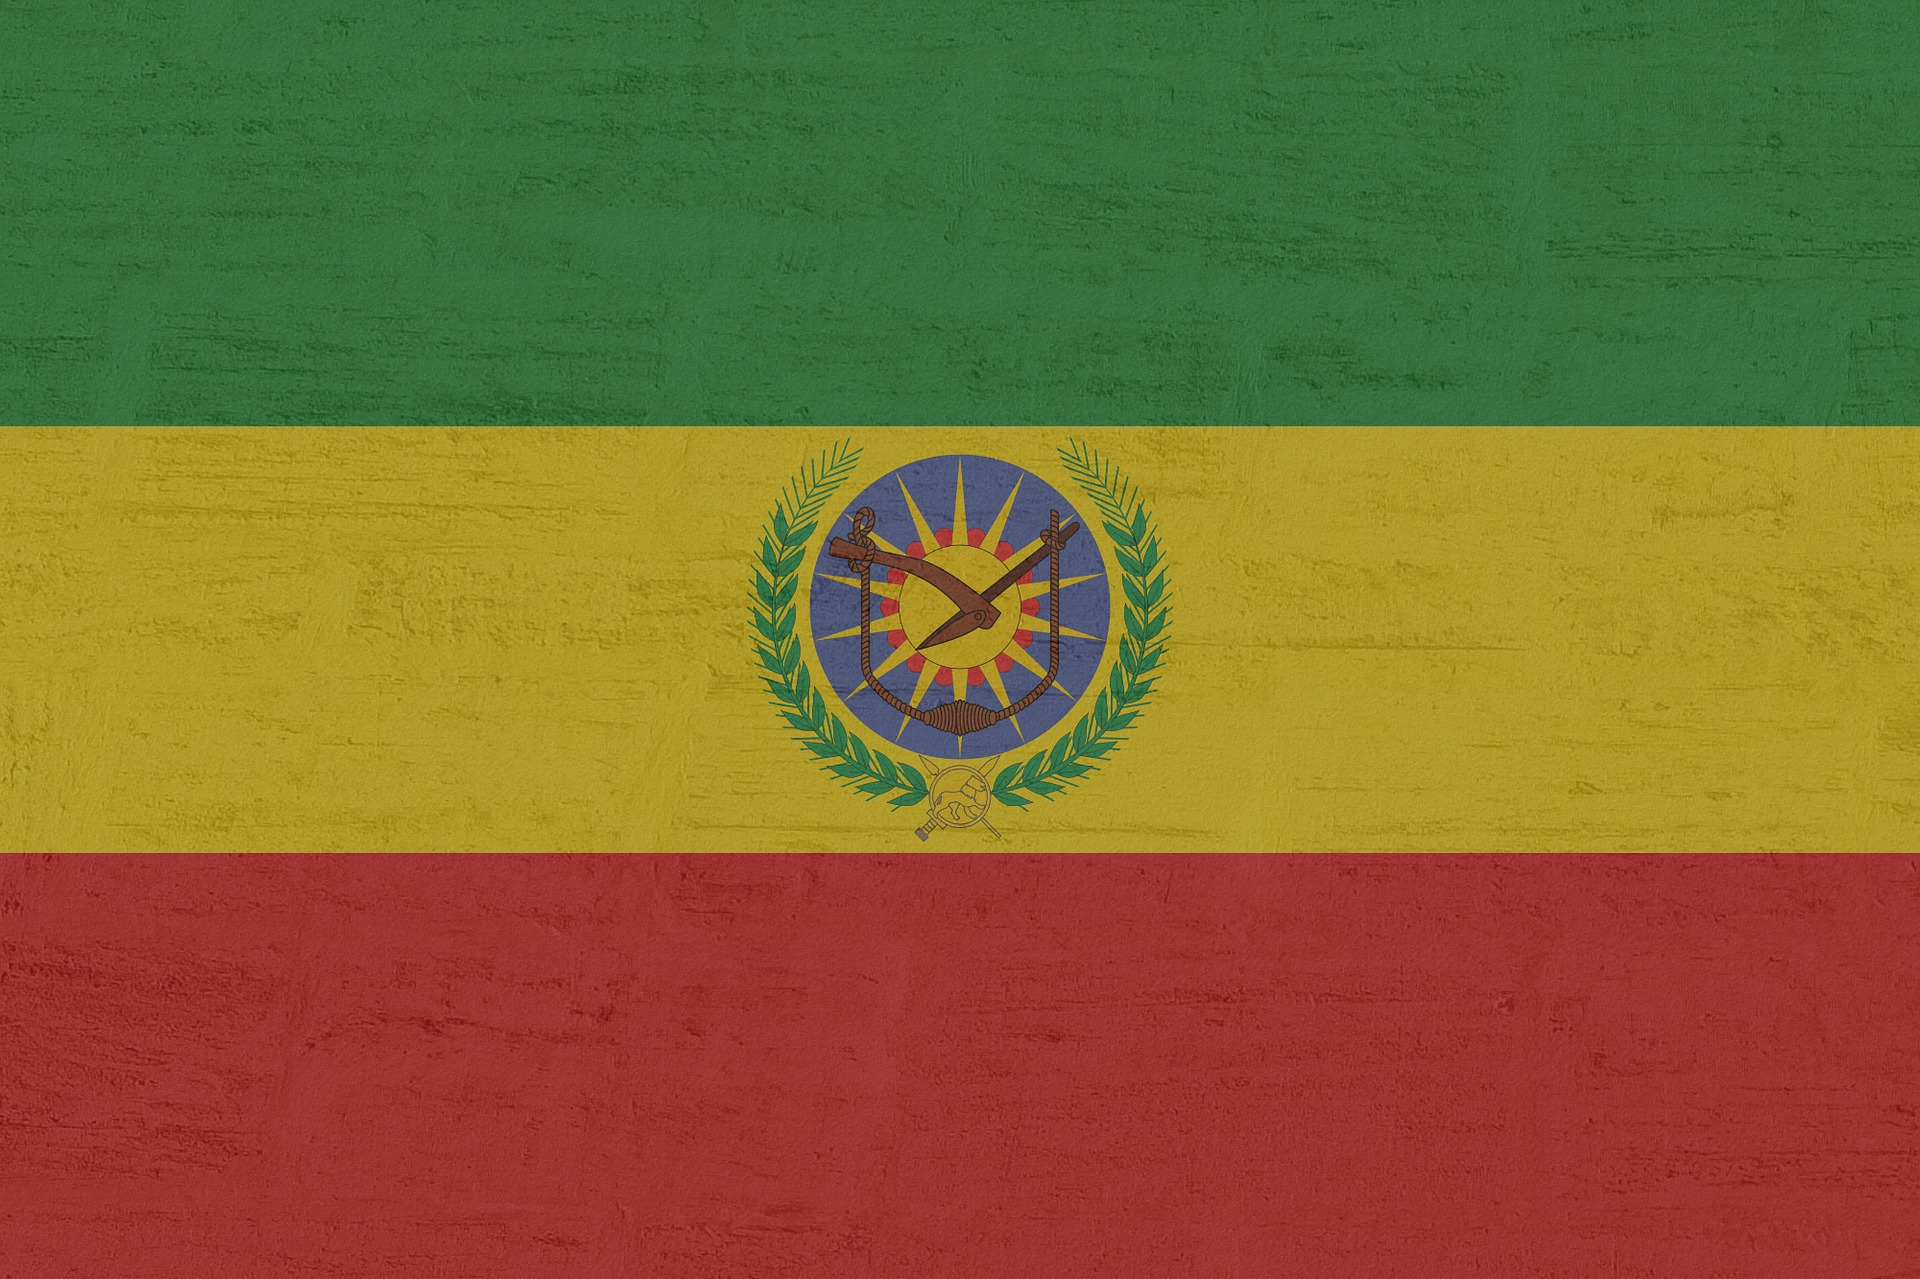 500 Christians murdered in Ethiopia since June